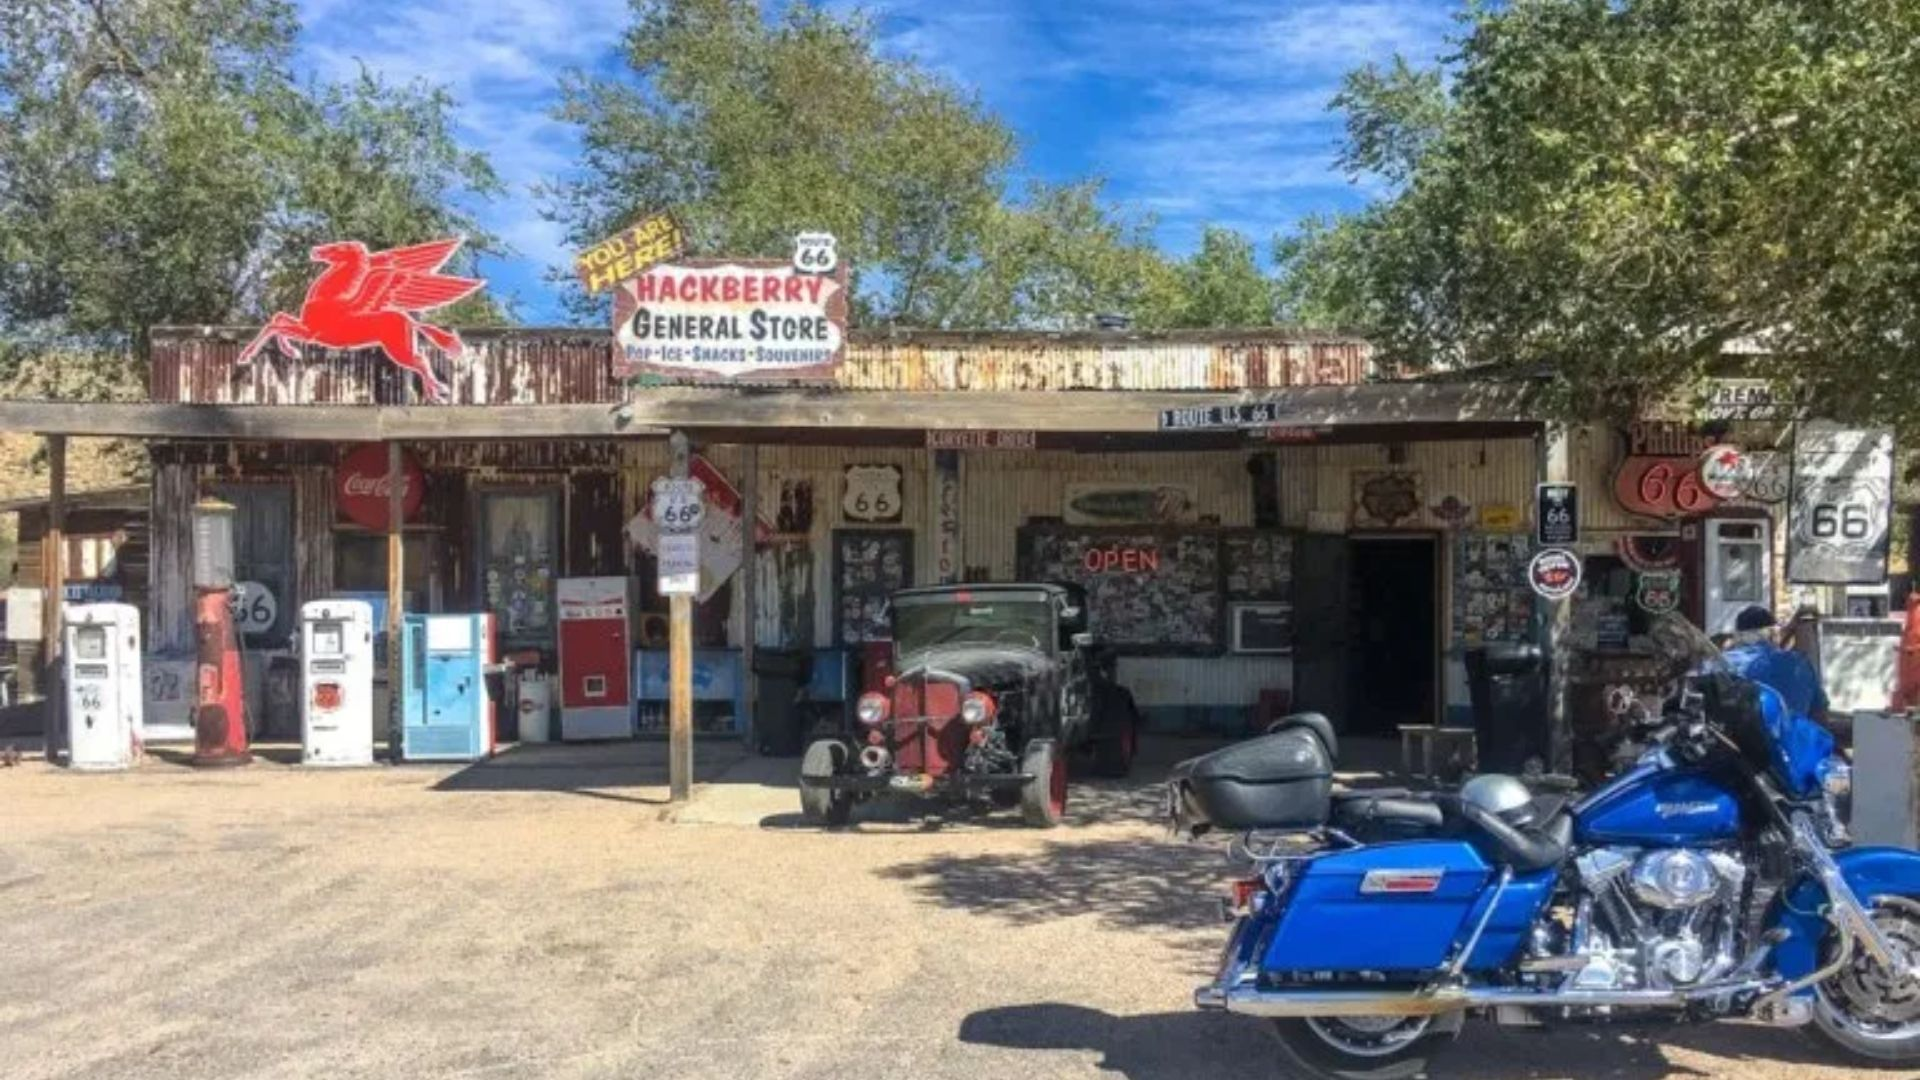 Visit These Iconic Route 66 Gas Stations